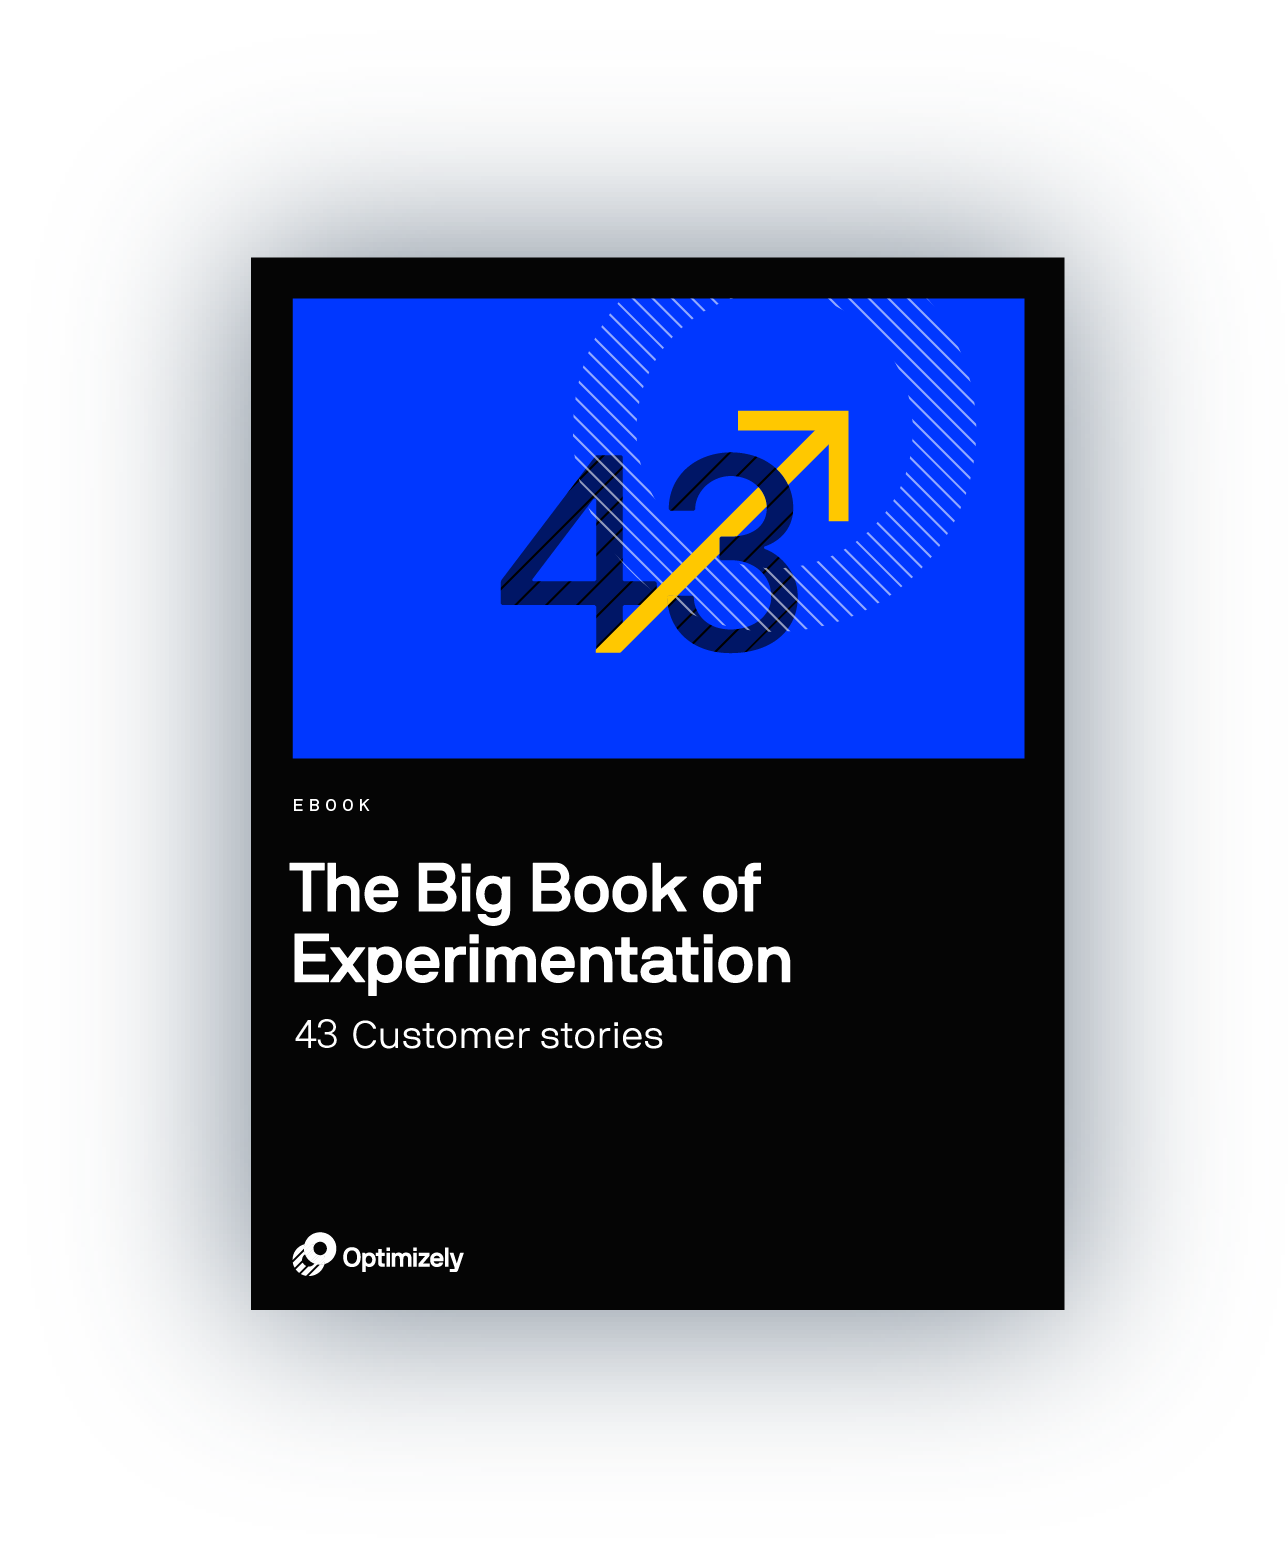 43 Winning Experiments and Customer Stories